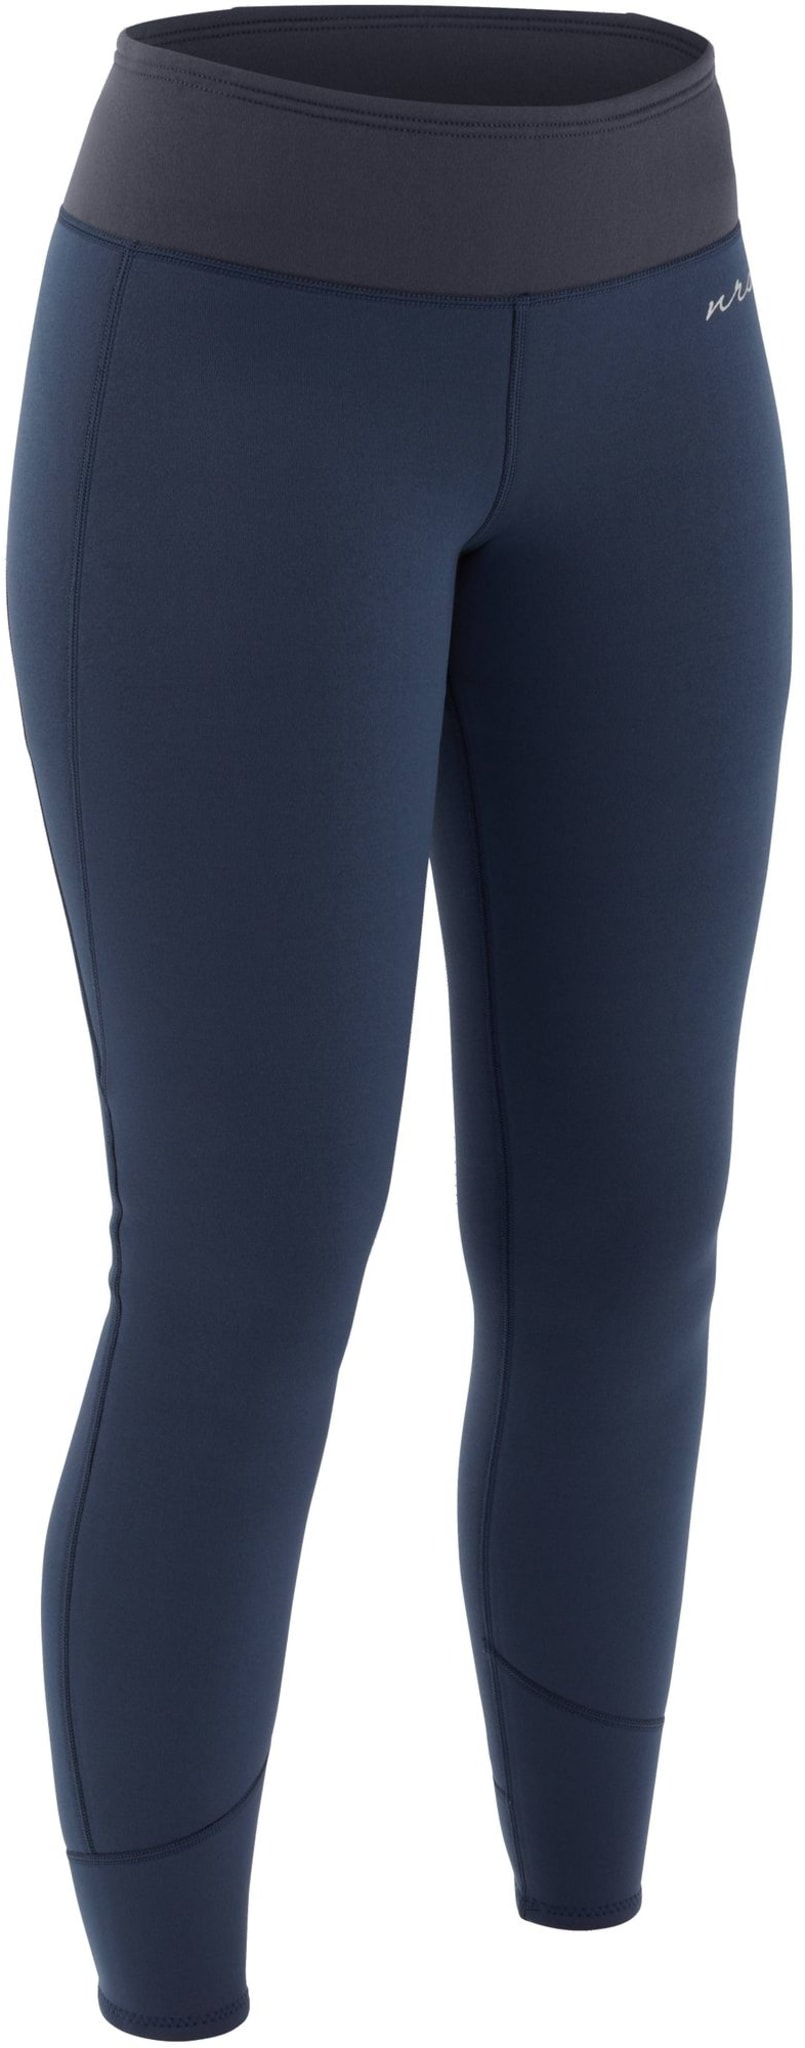 NRS Women's Ignitor Pant